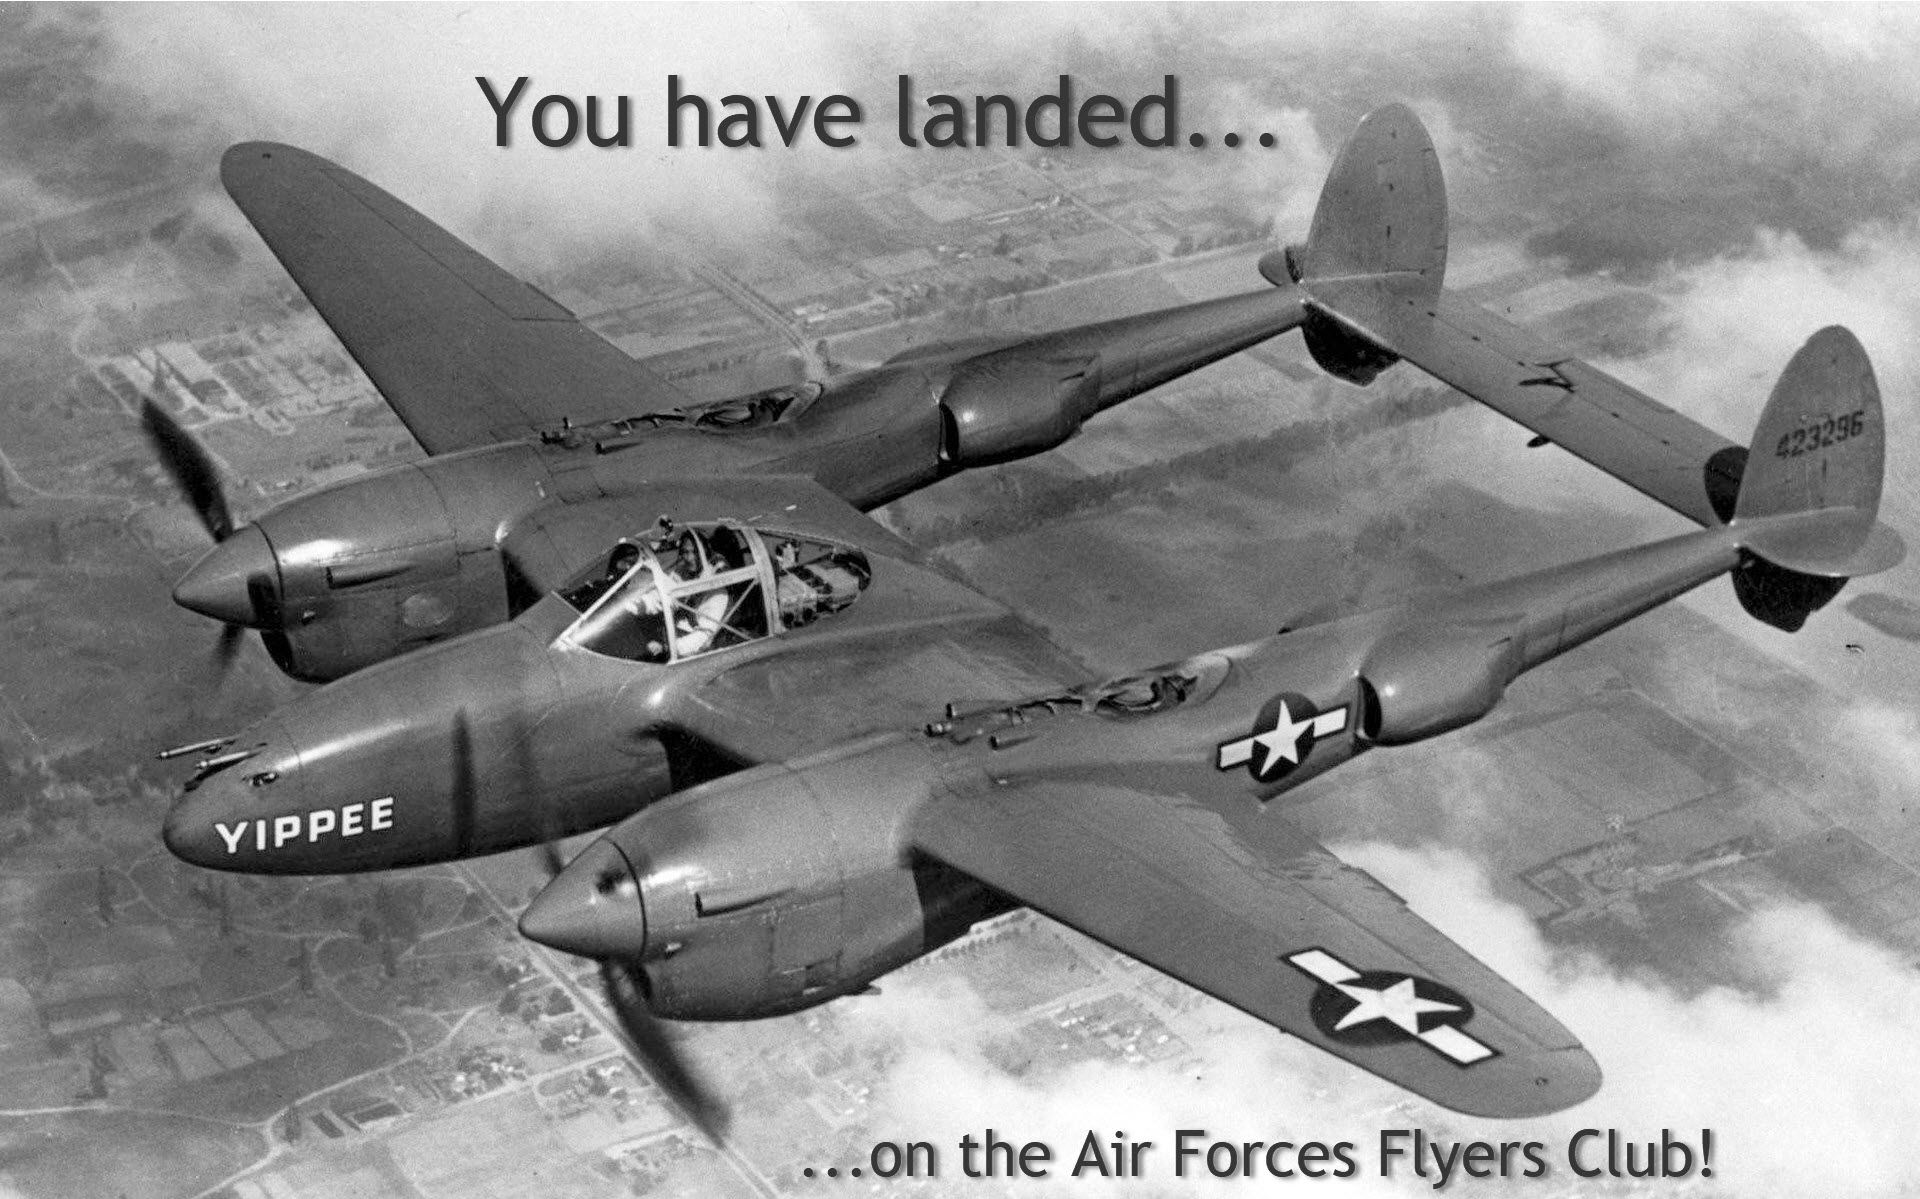 You have landed on the Air Forces Flyers Club!